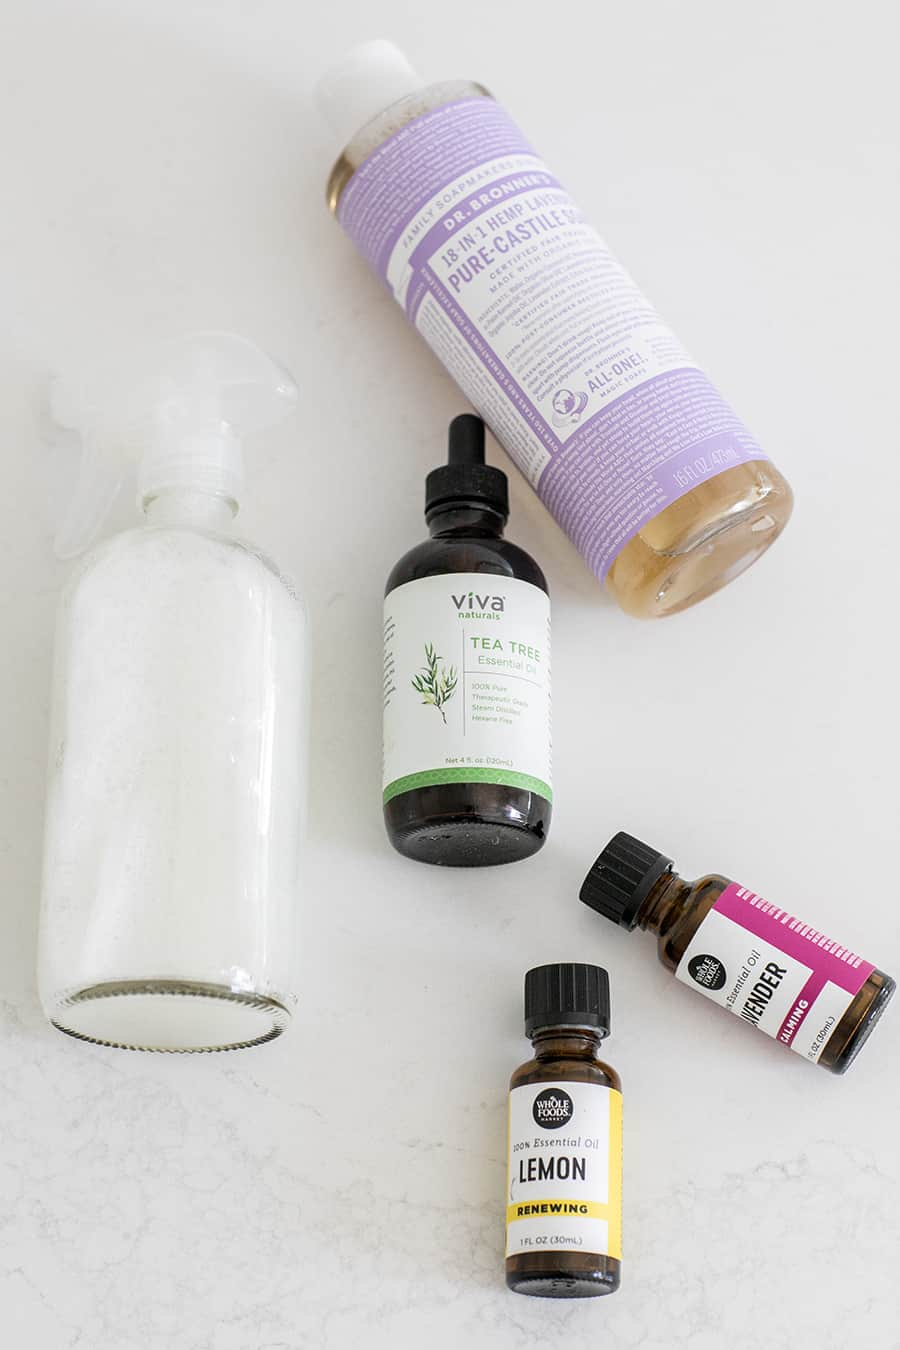 Lavender Essential Oil, Lemon Essential Oil, Tea Tree Oil, Castile Soap and a Clear Spray Bottle for Making DIY Cleaning Products